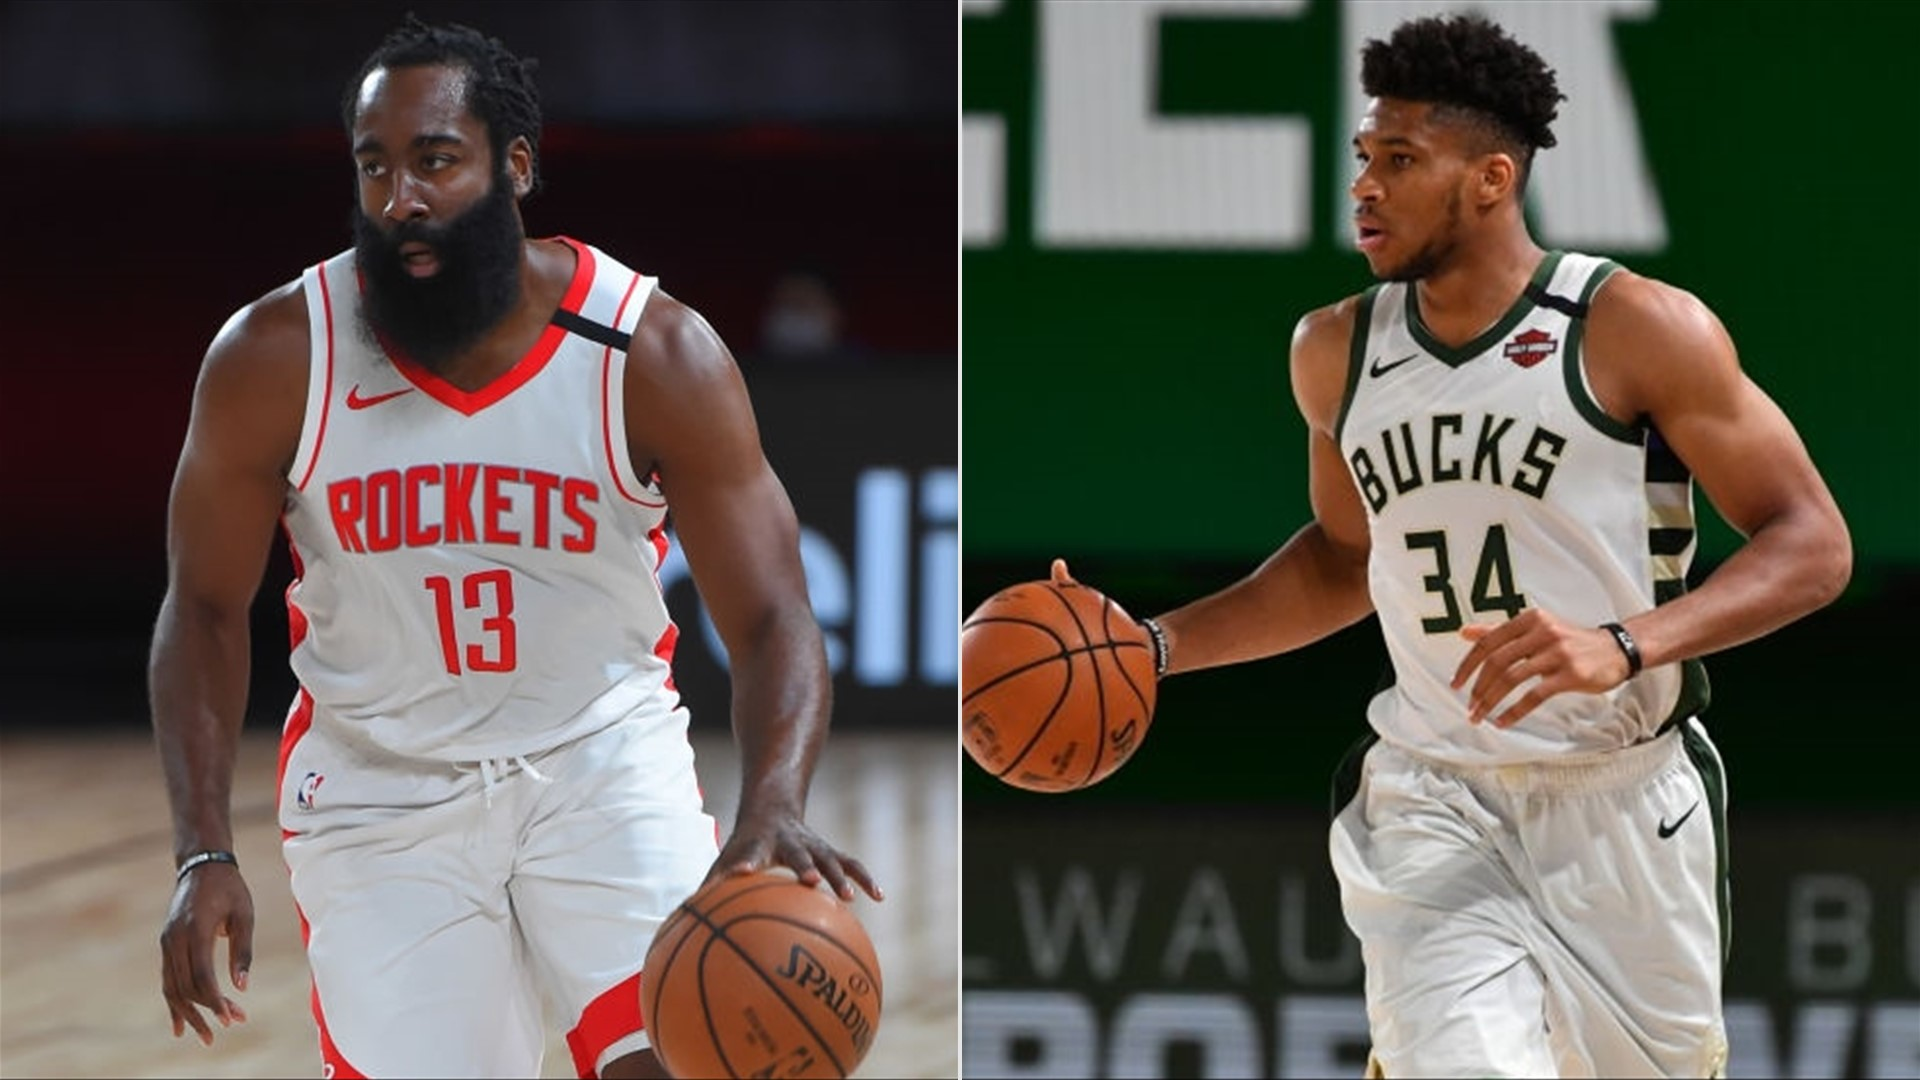 Bucks vs Rockets Live Stream- Start Time, TV Channels, Betting Odds and Prediction